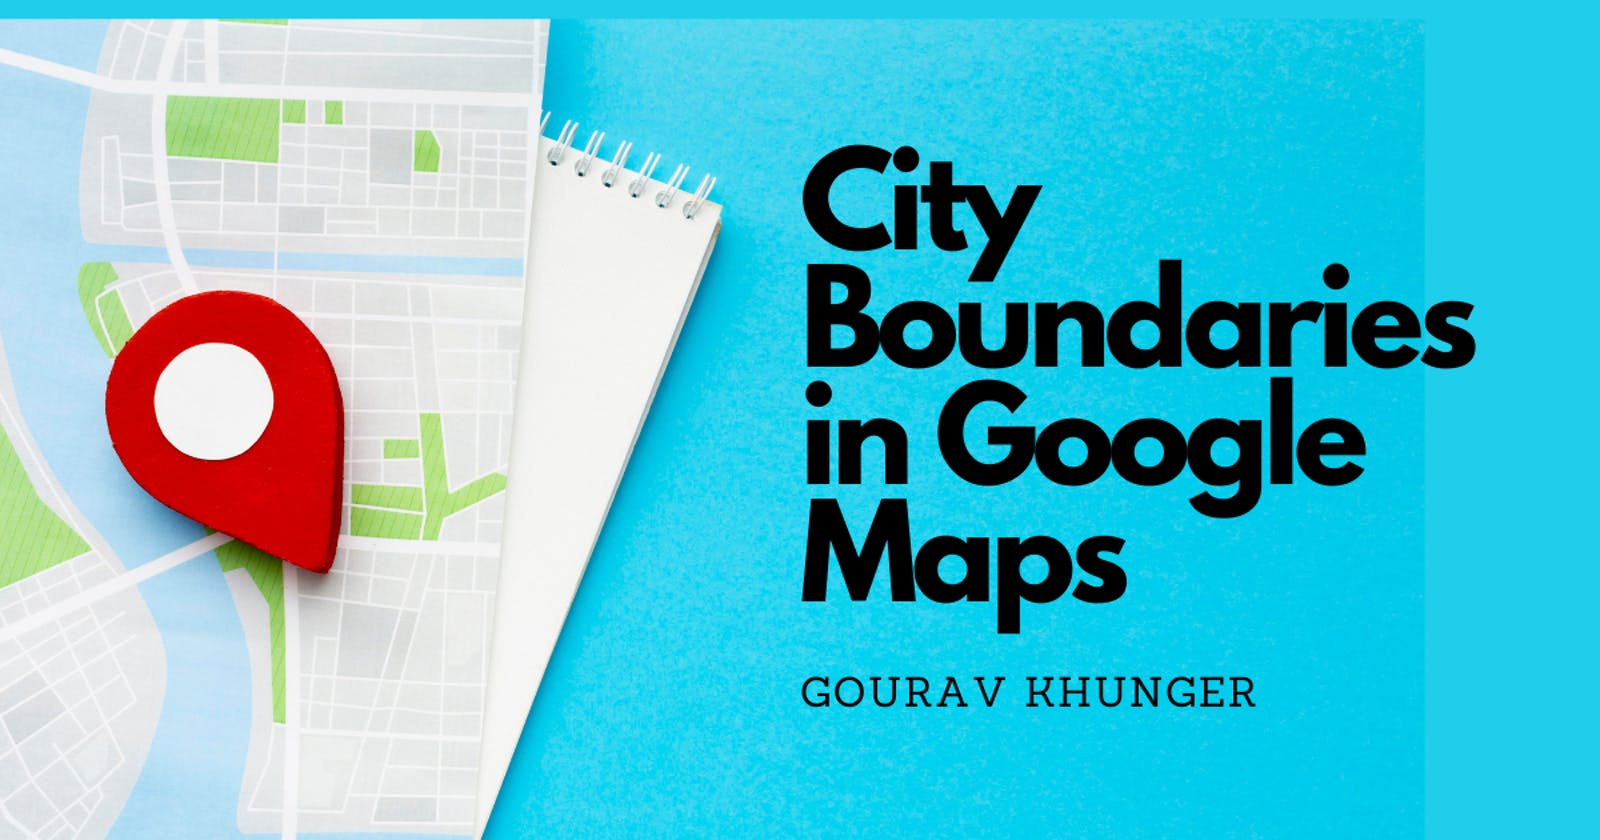 How to Create City Boundaries in Google Maps